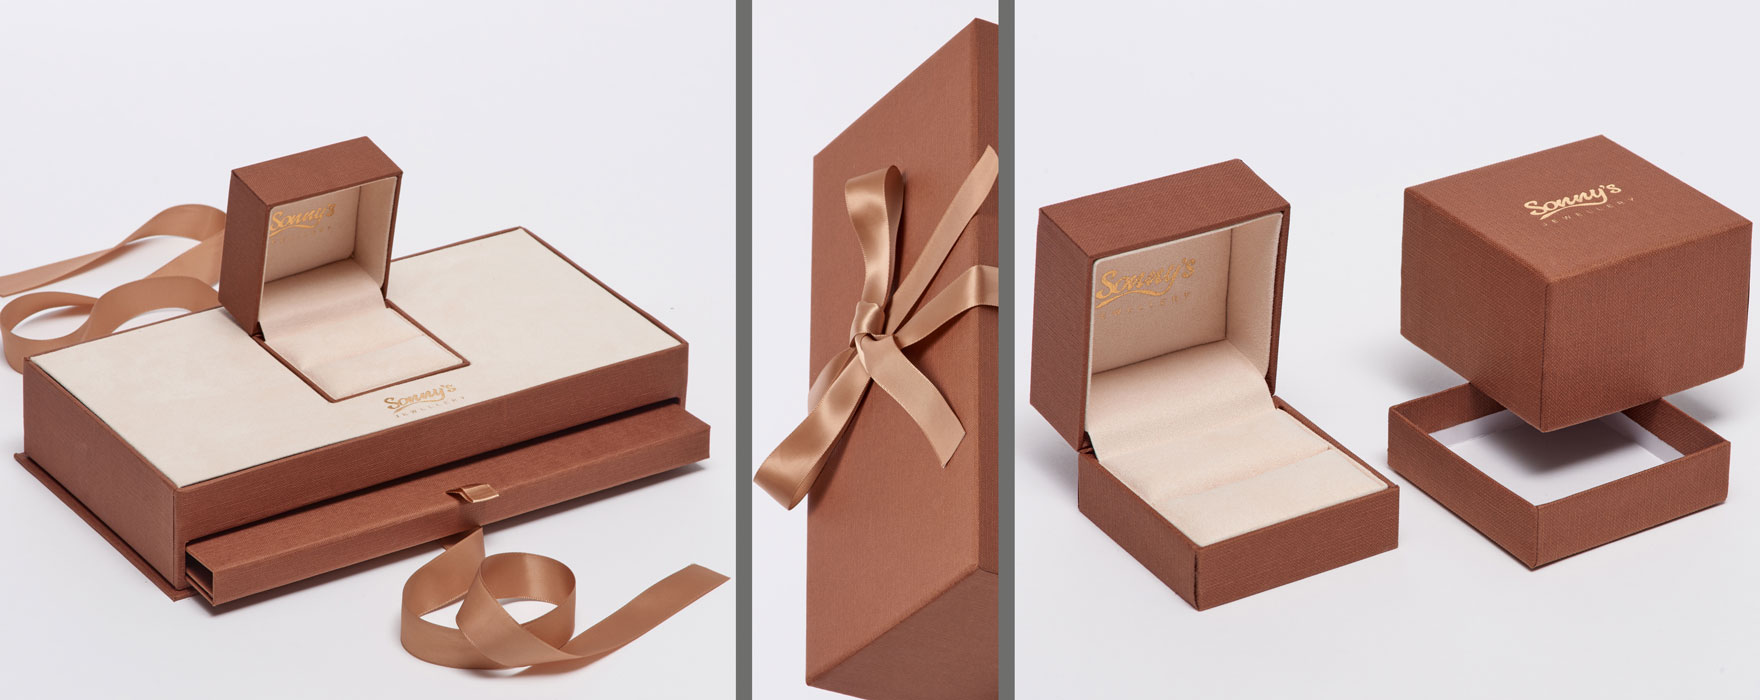 Luxury Packaging Market | Globally Growth, Trends and Forecasts 2019-2024